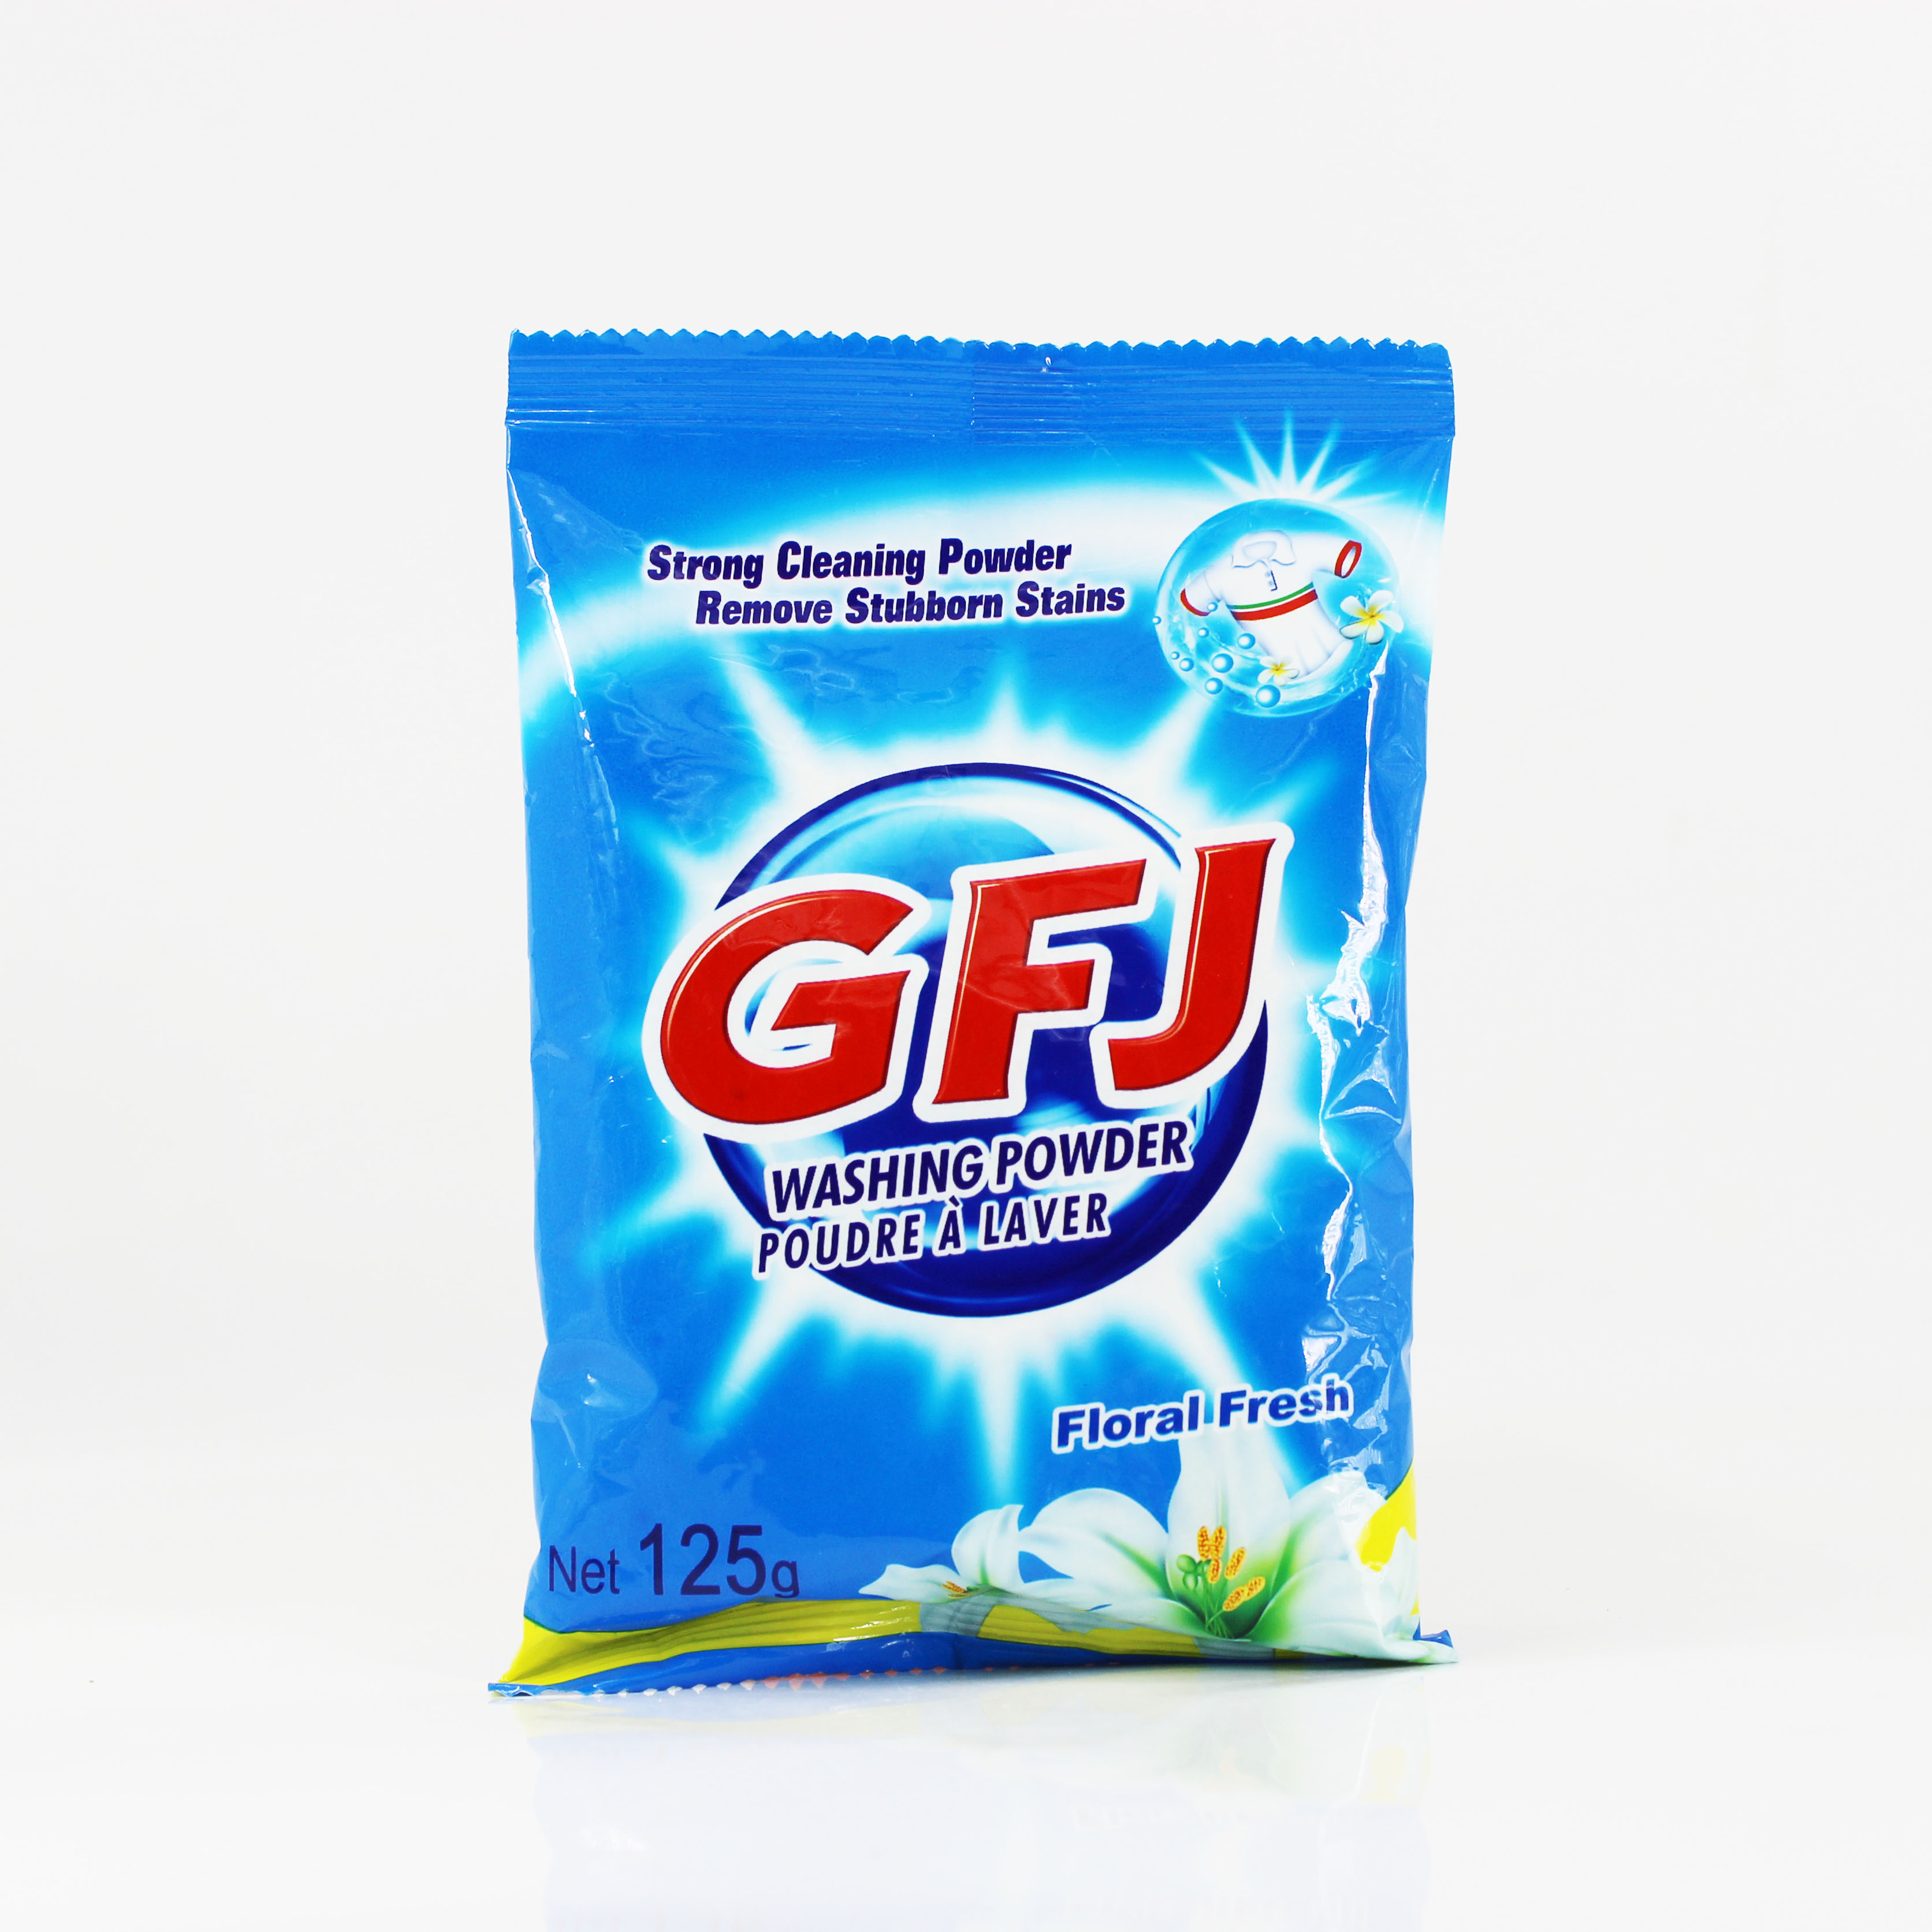 Designed package available laundry detergent / soap / washing powder